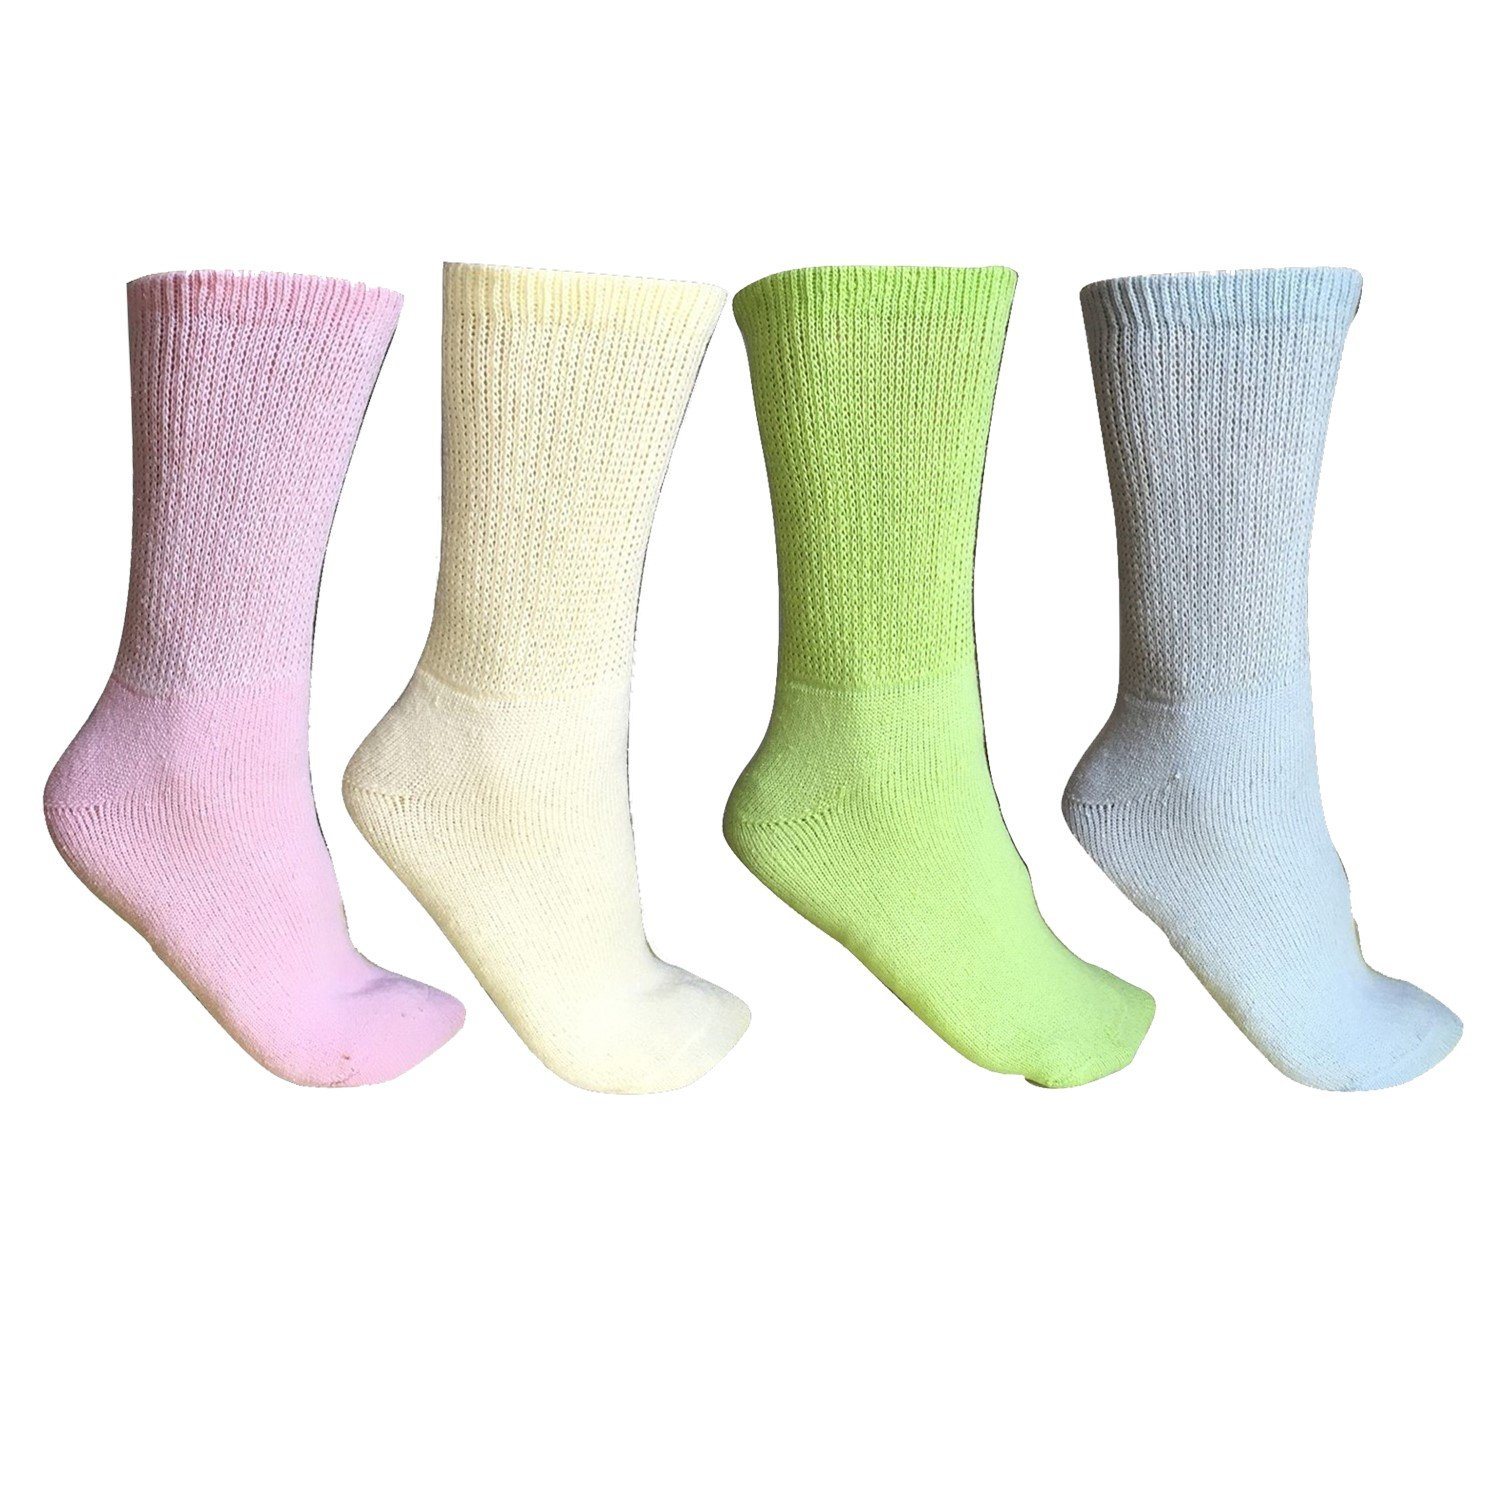 Diabetic Socks, 6 pairs, Non Binding Top, Won't limit circulation, Minimize friction and Neurological discomfort (9-11, multi-color)